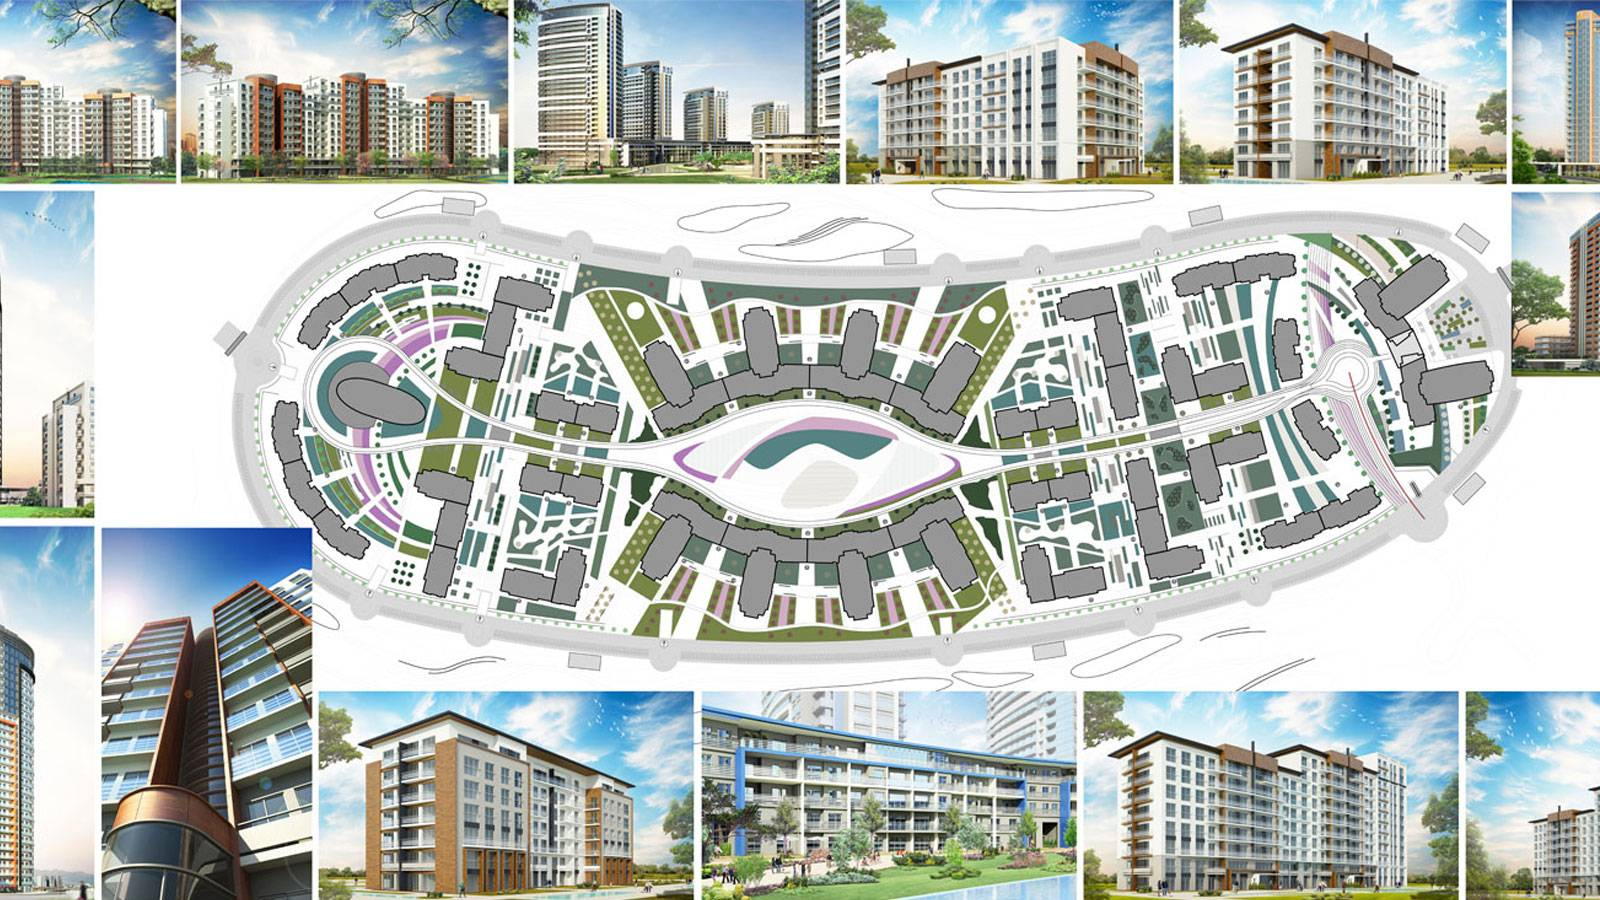 03.07.2013 Tema Park Residential Section has been unveiled.